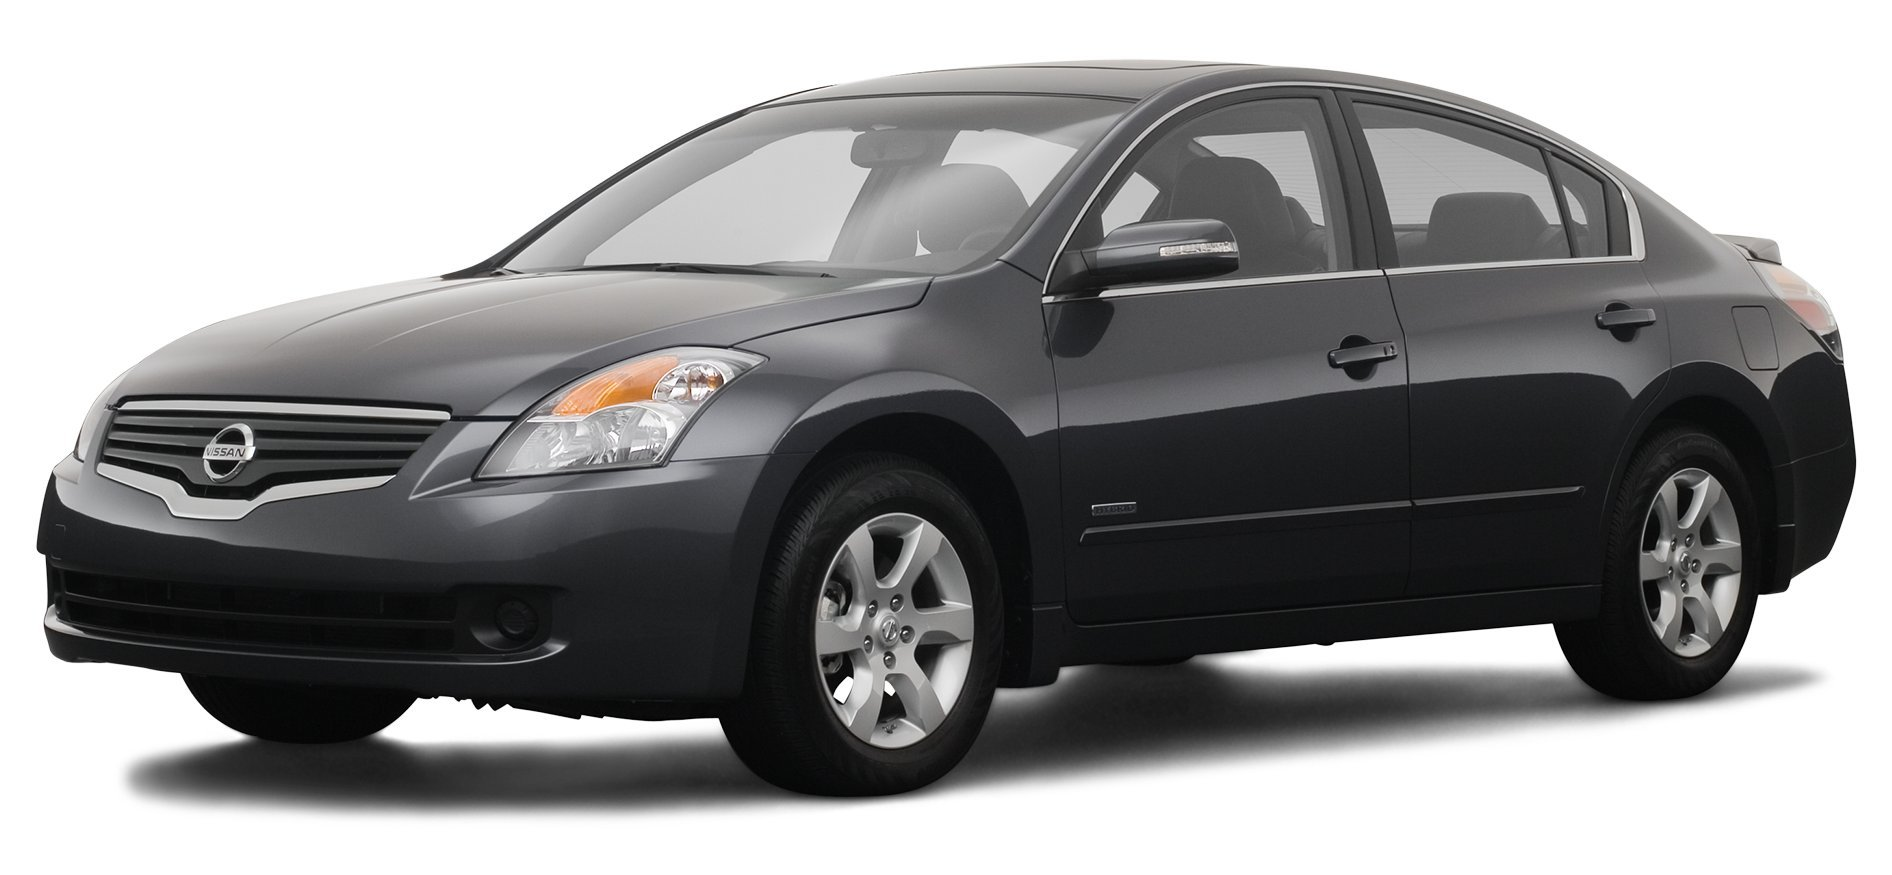 2008 nissan altima reviews images and specs vehicles. Black Bedroom Furniture Sets. Home Design Ideas